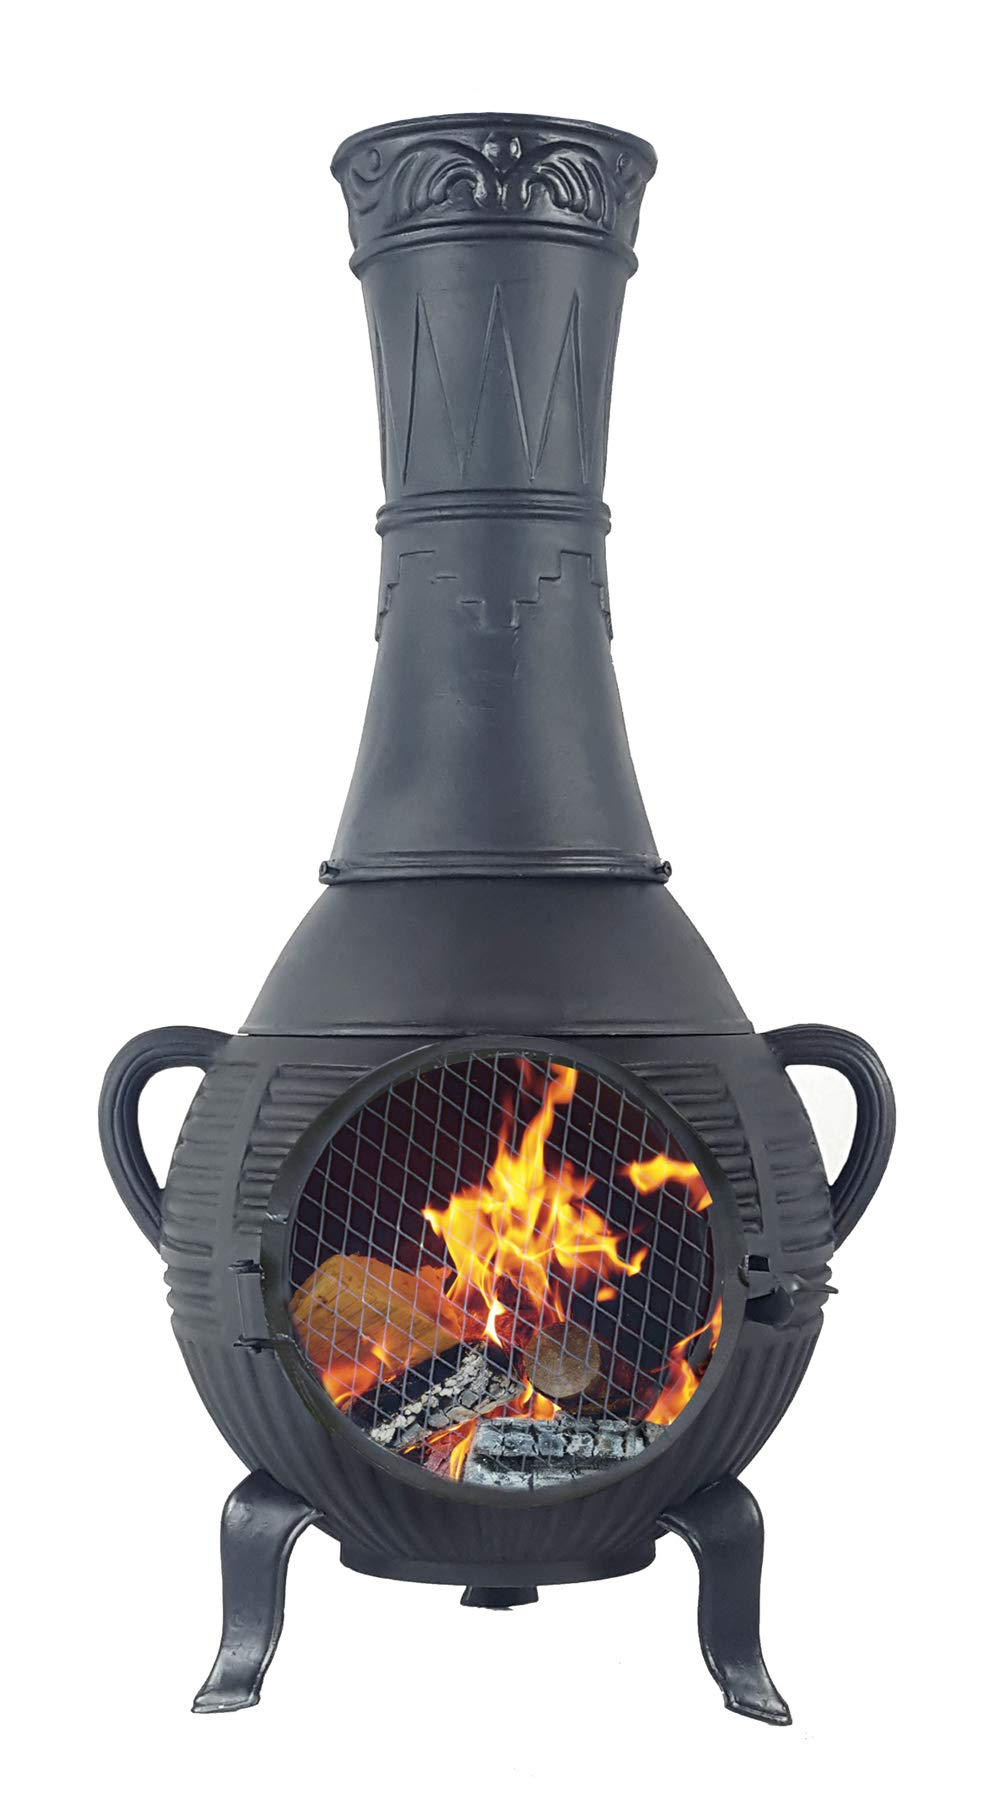 The Blue Rooster CAST Aluminum Pine Chiminea with Gas and a 10' Hose in Charcoal. Also Comes with a Free Year Round Cover. by The Blue Rooster